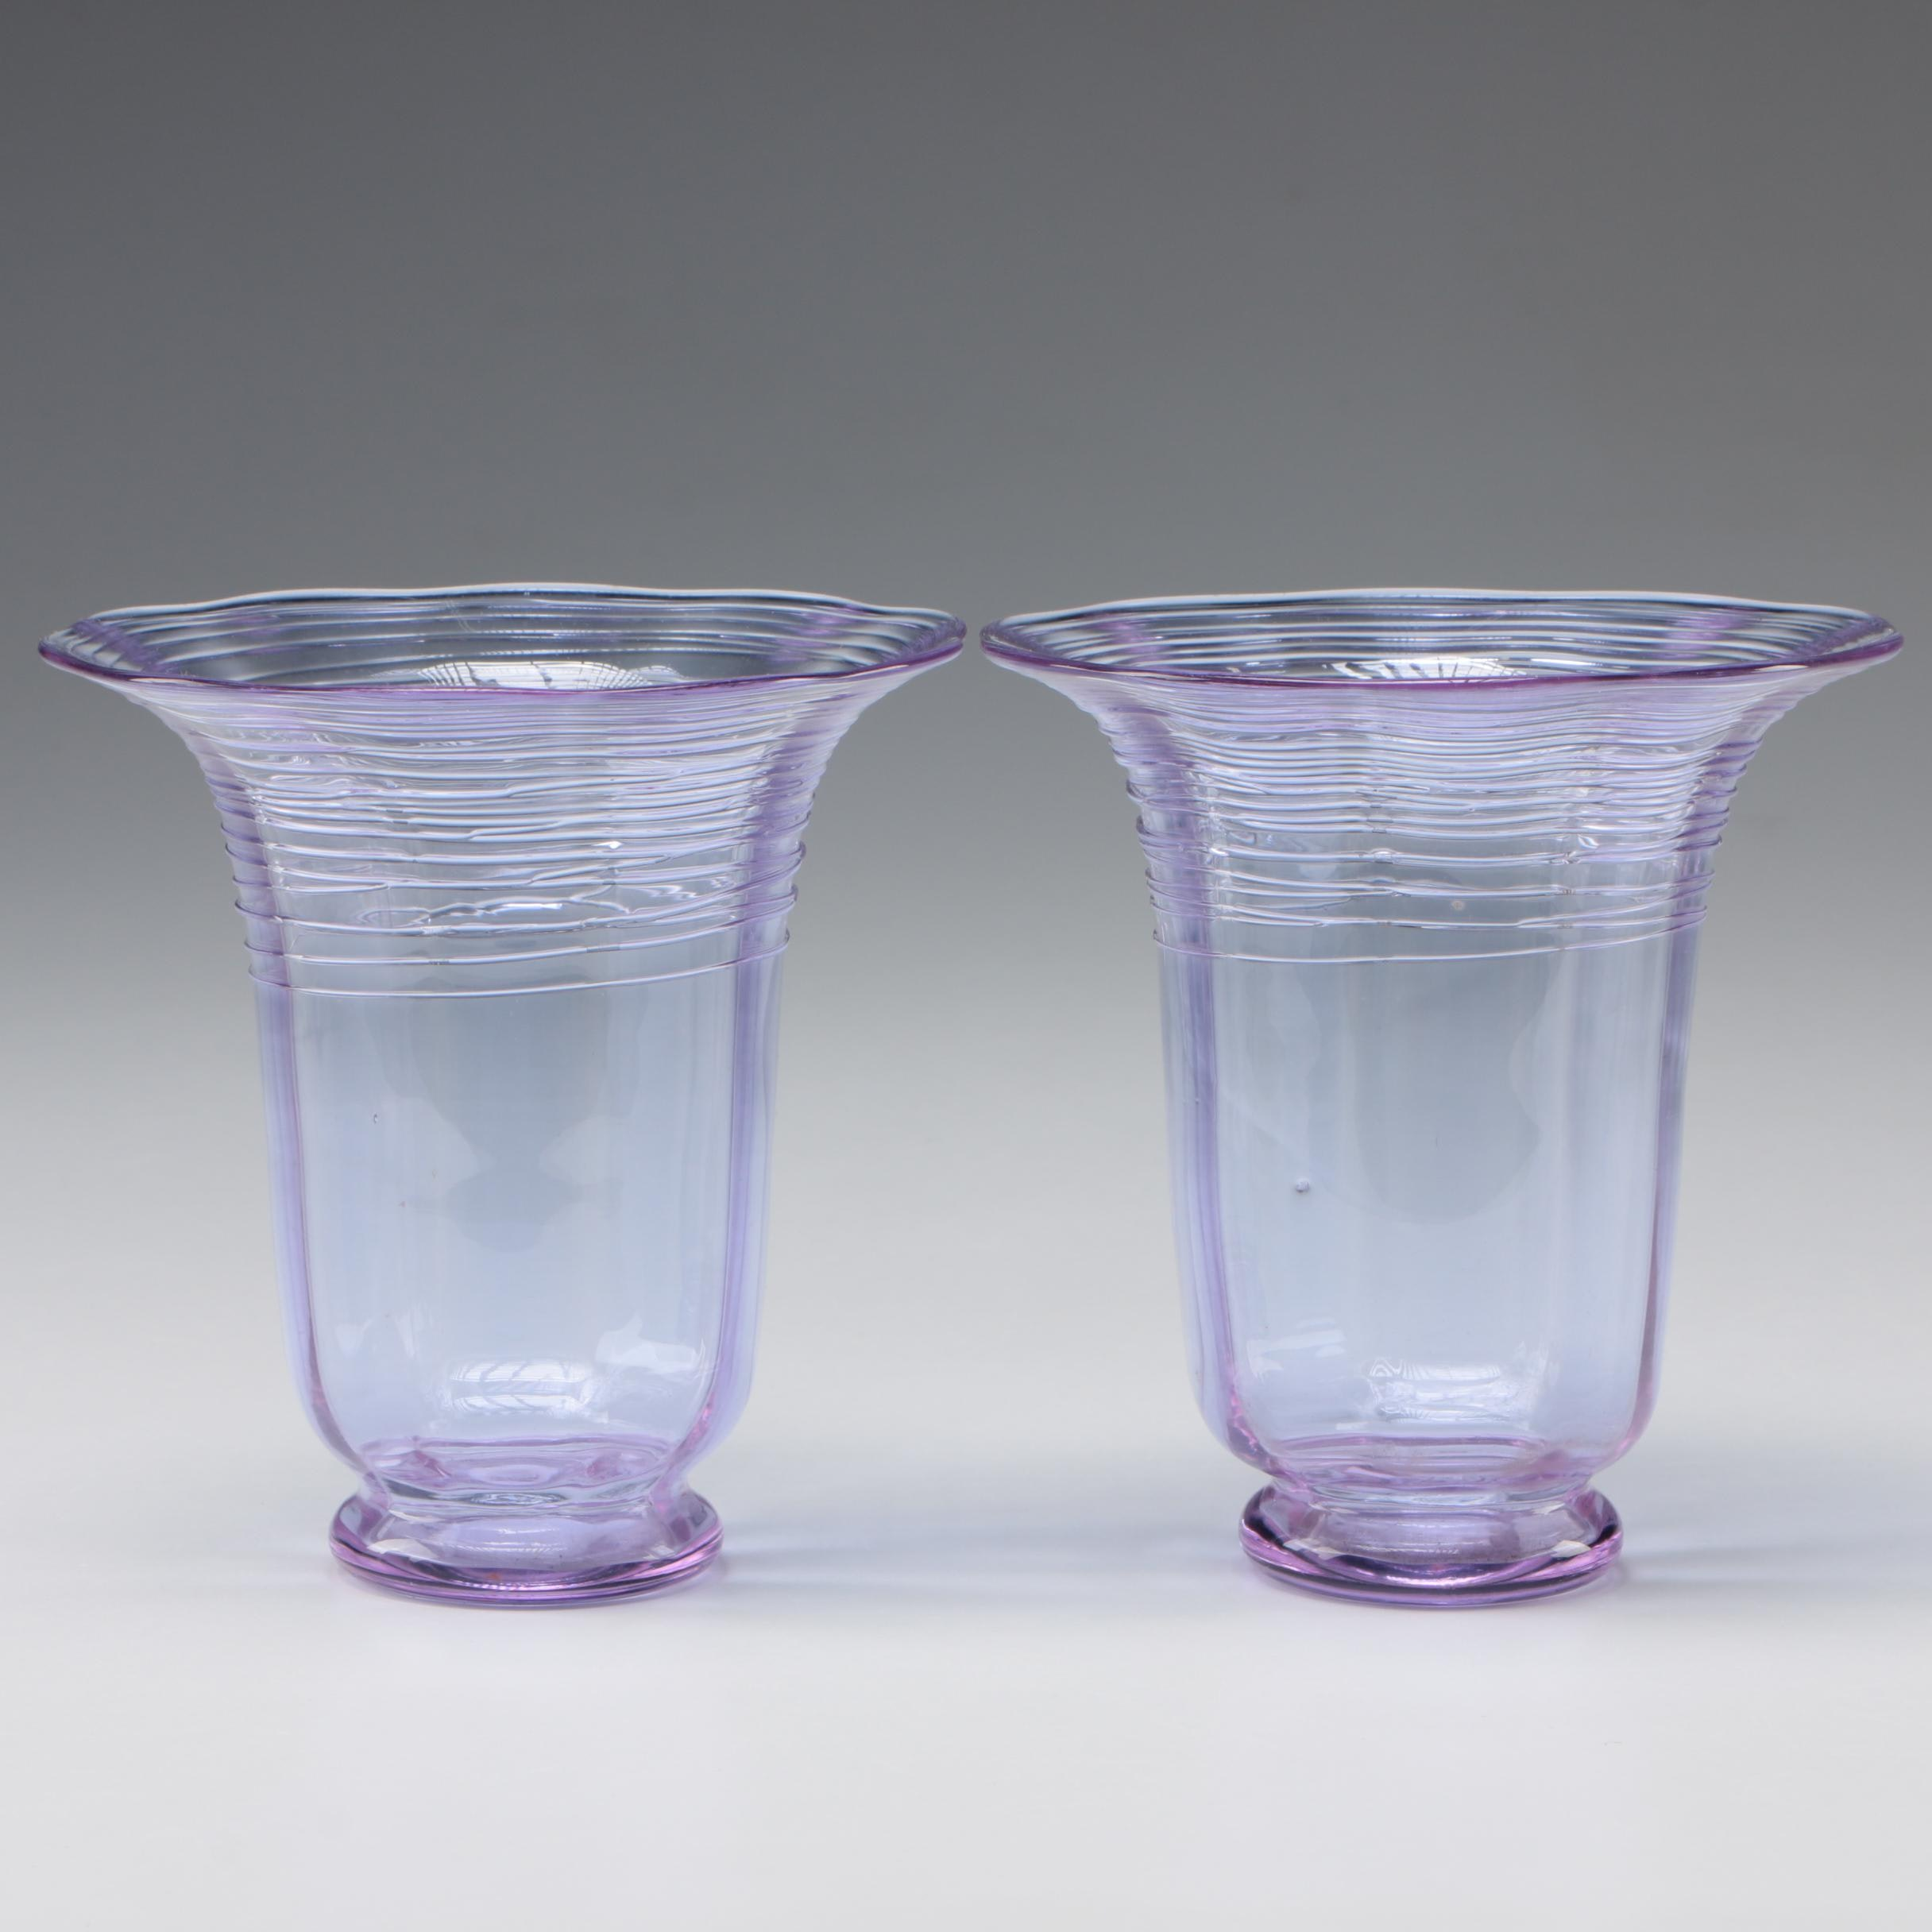 Steuben Wisteria and Reeded Art Glass Vases by Frederick Carder, 1903 - 1933